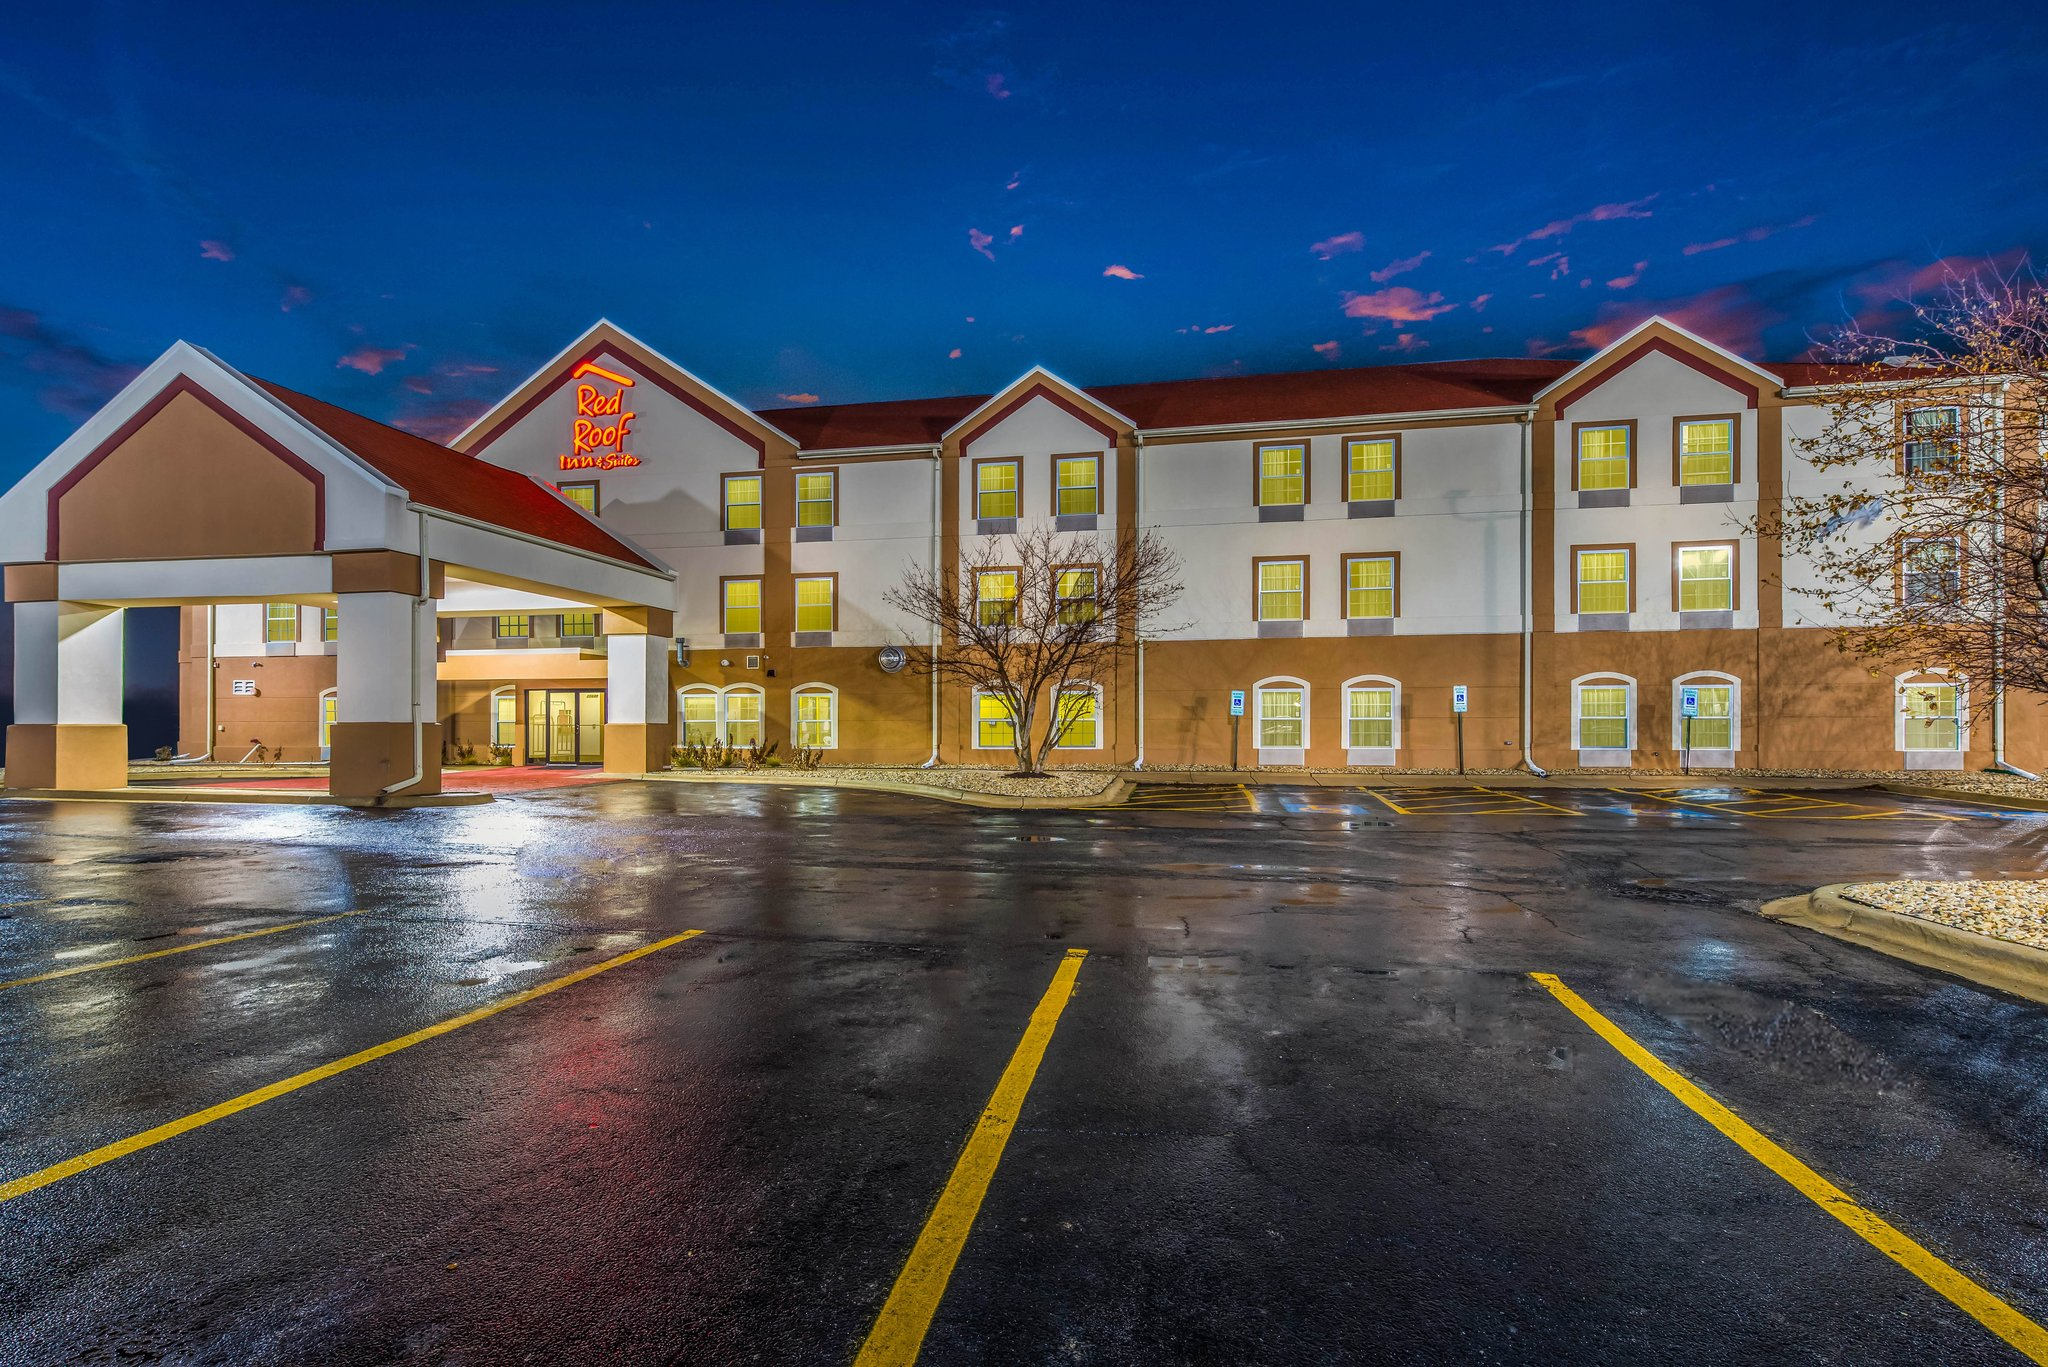 Red Roof Inn and Suites Monee